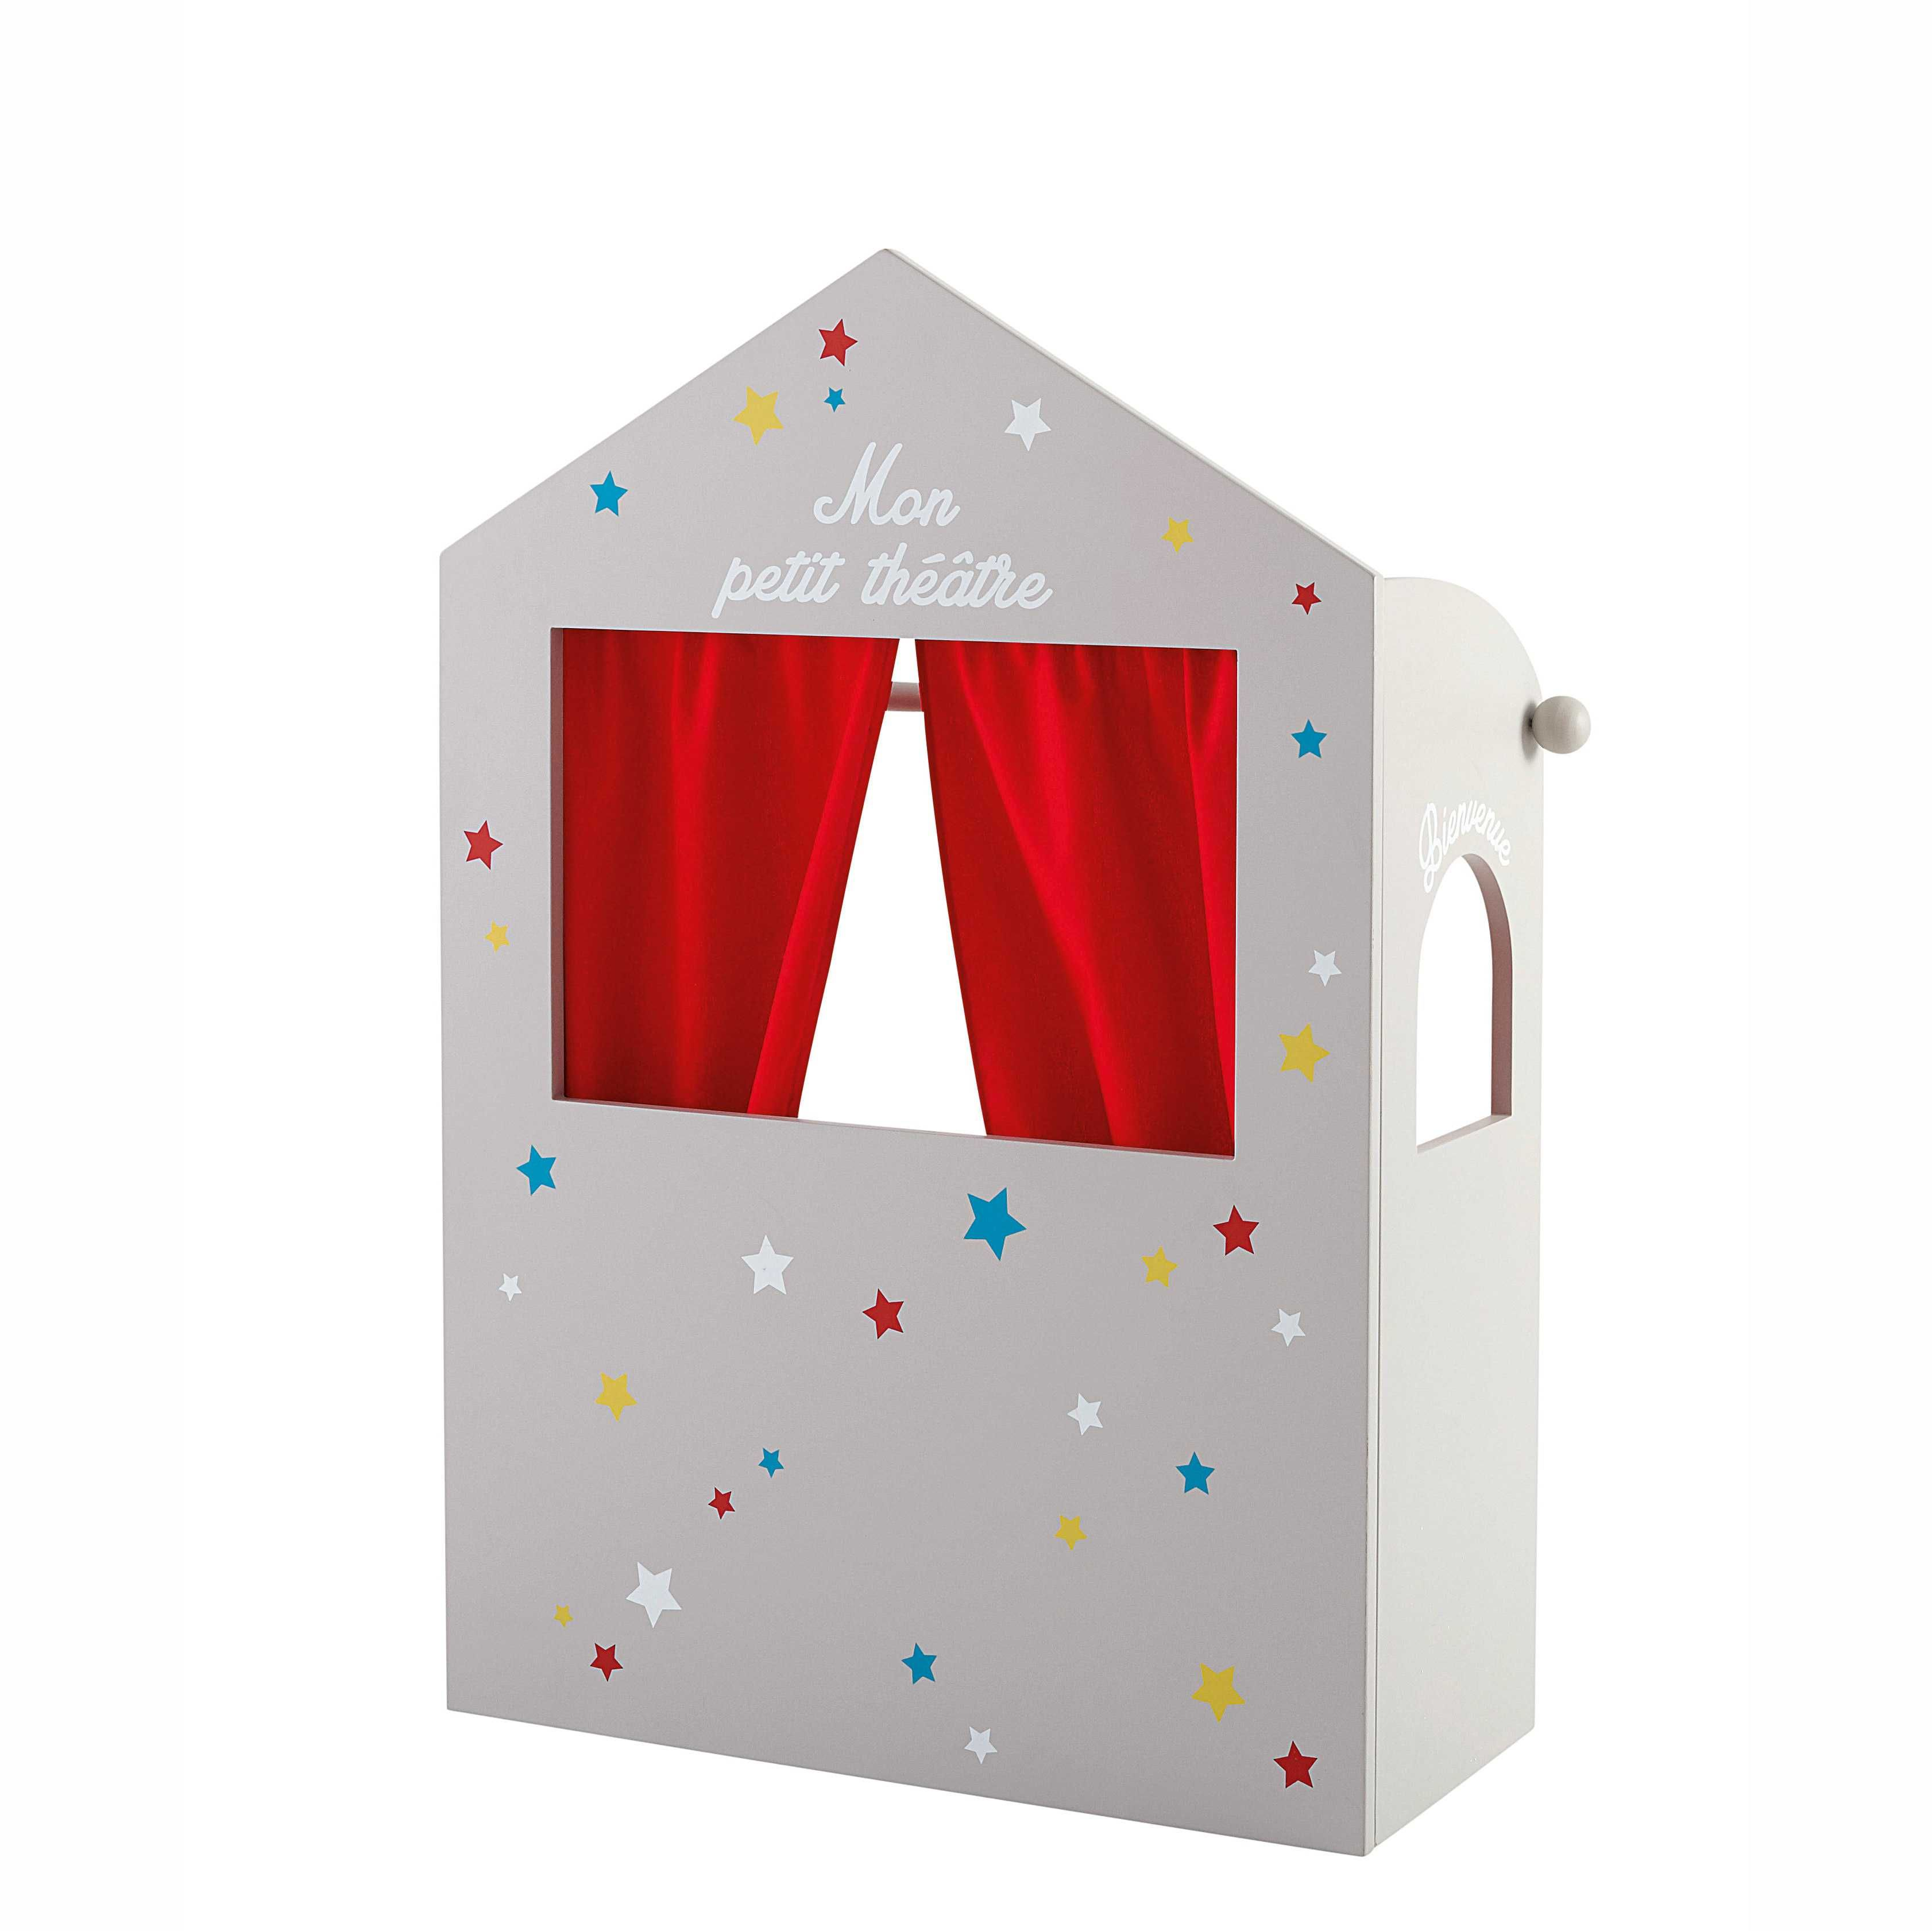 Theatre De Marionnettes Pour Enfants Star Puppet Theater Kids Puppet Theater Puppets